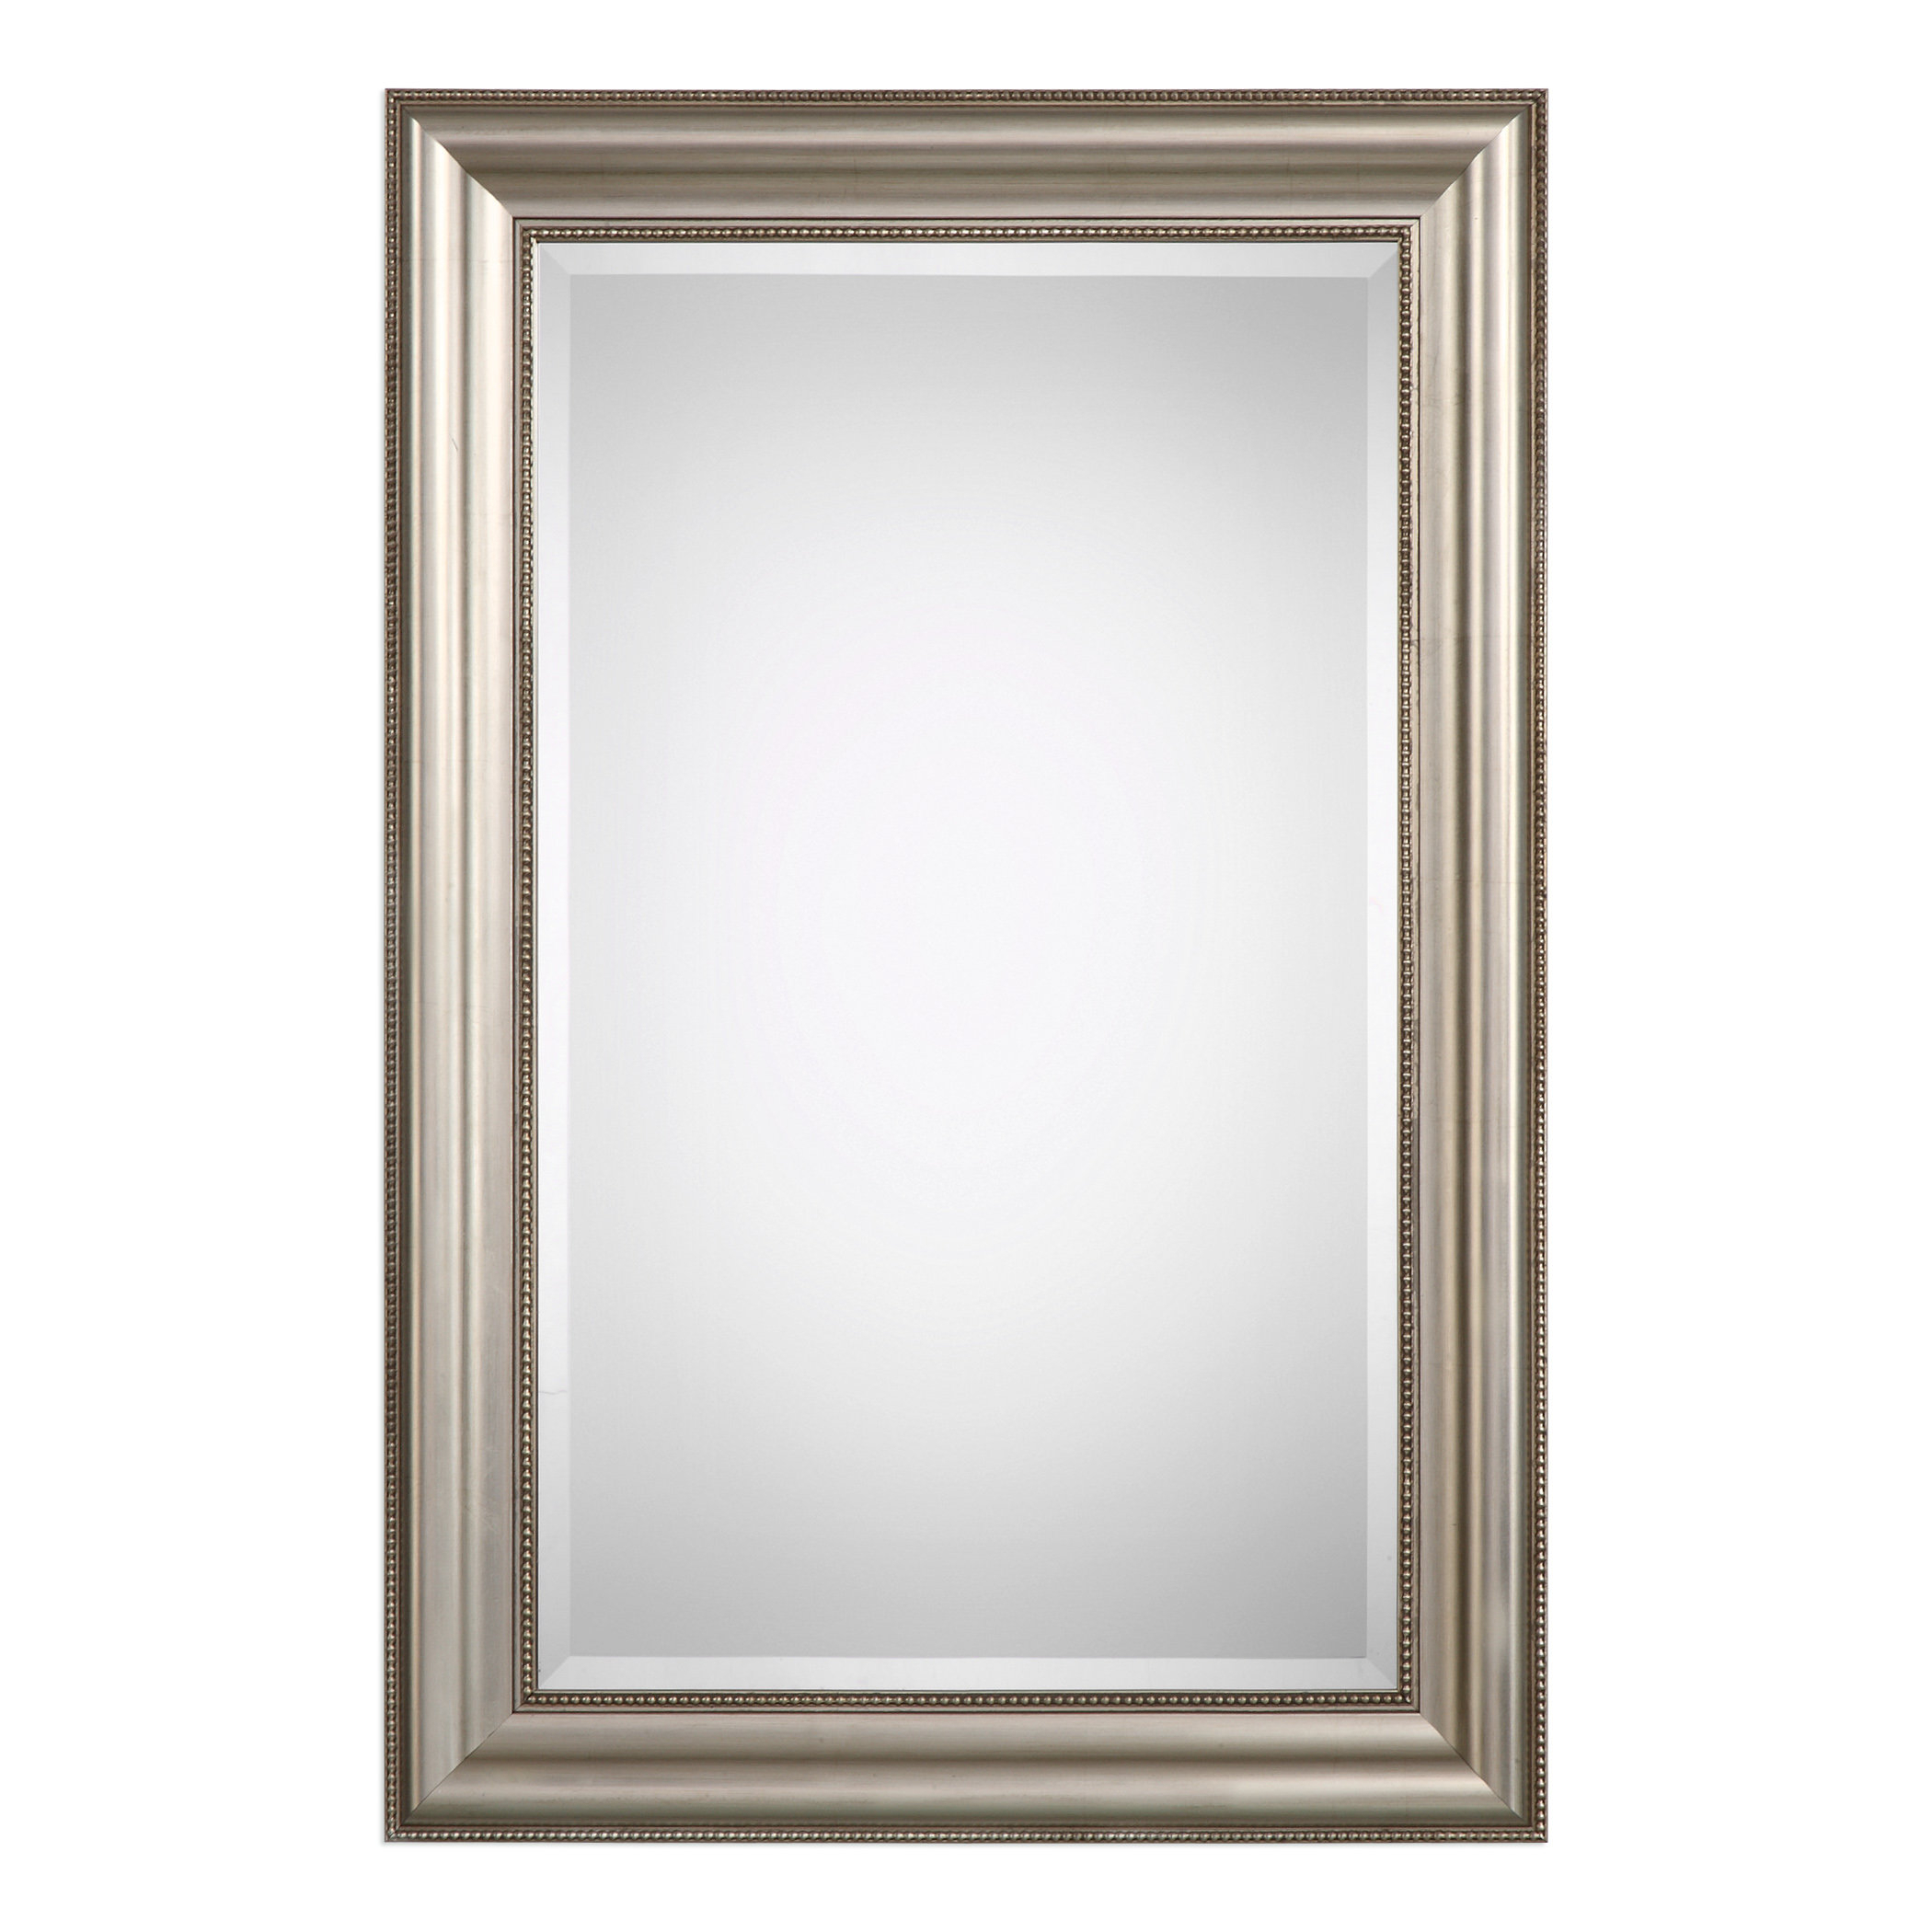 Farmhouse Mirrors | Birch Lane For Beaded Accent Wall Mirrors (View 8 of 20)